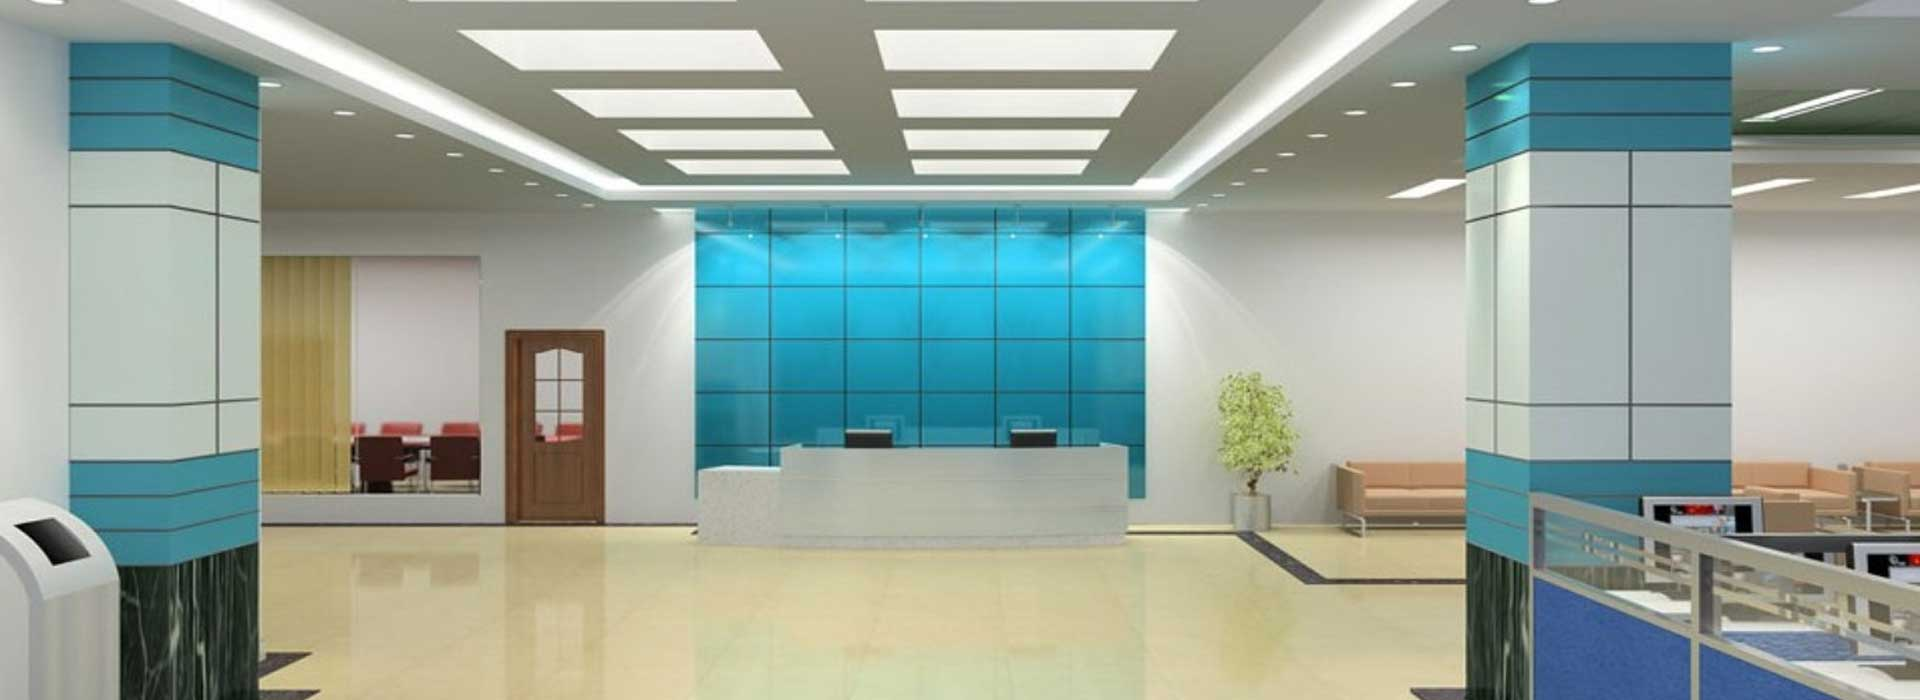 Office building interiors by jaipur interiors for Commercial interior design firms the list